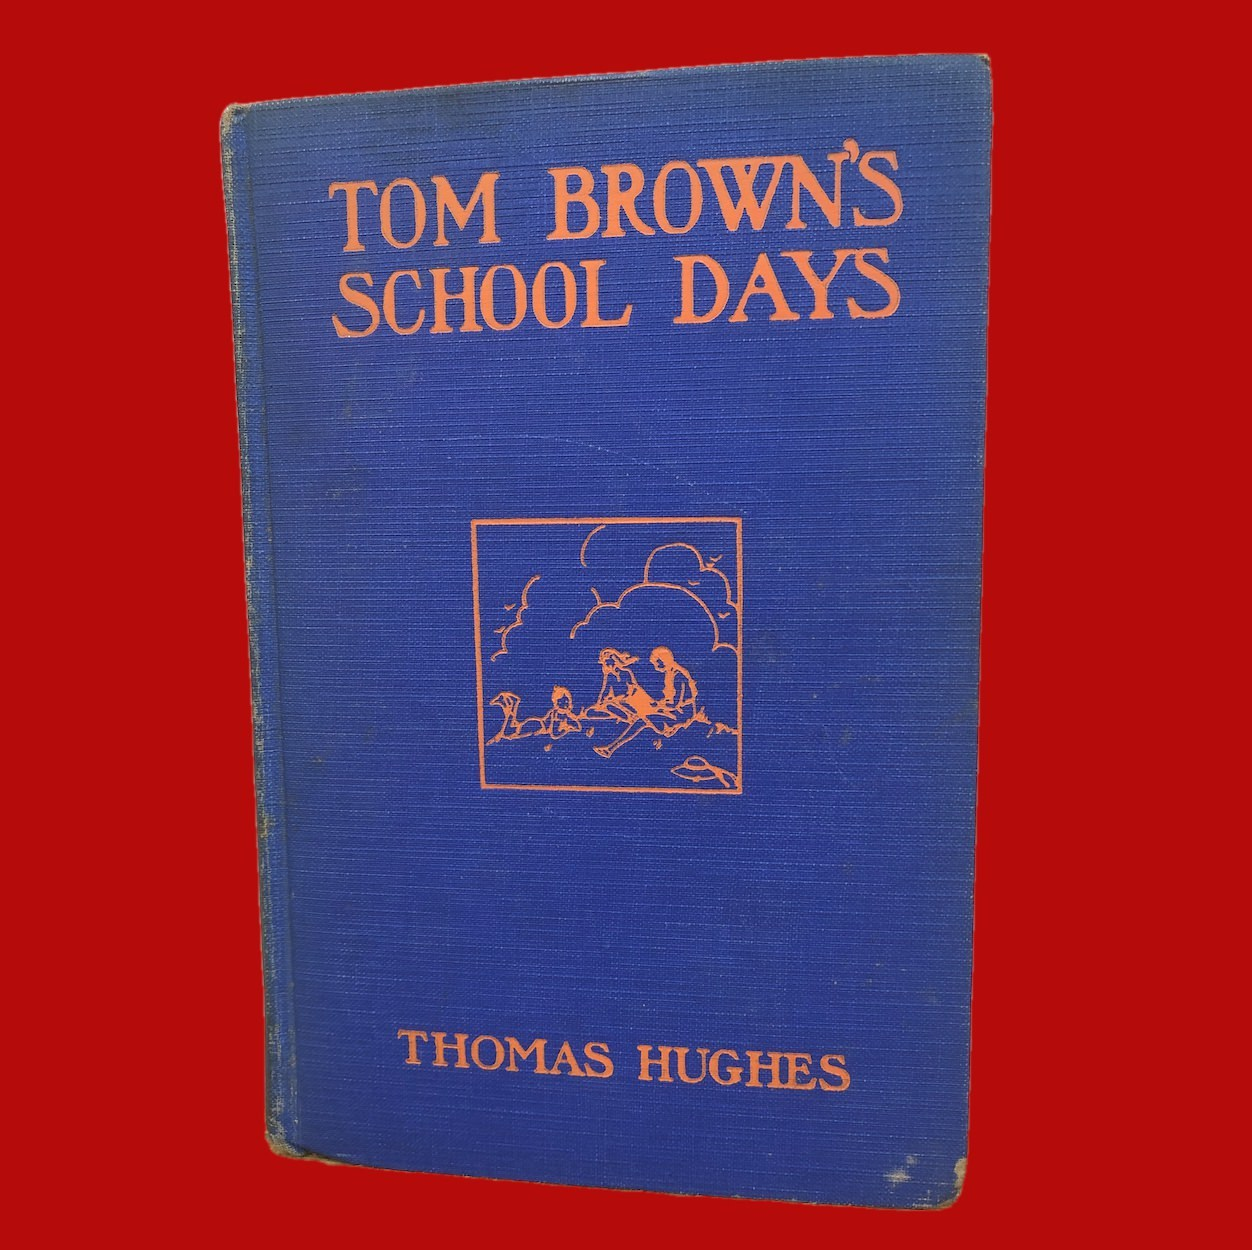 Tom Brown's School Days Book by Thomas Hughes 1935 01597